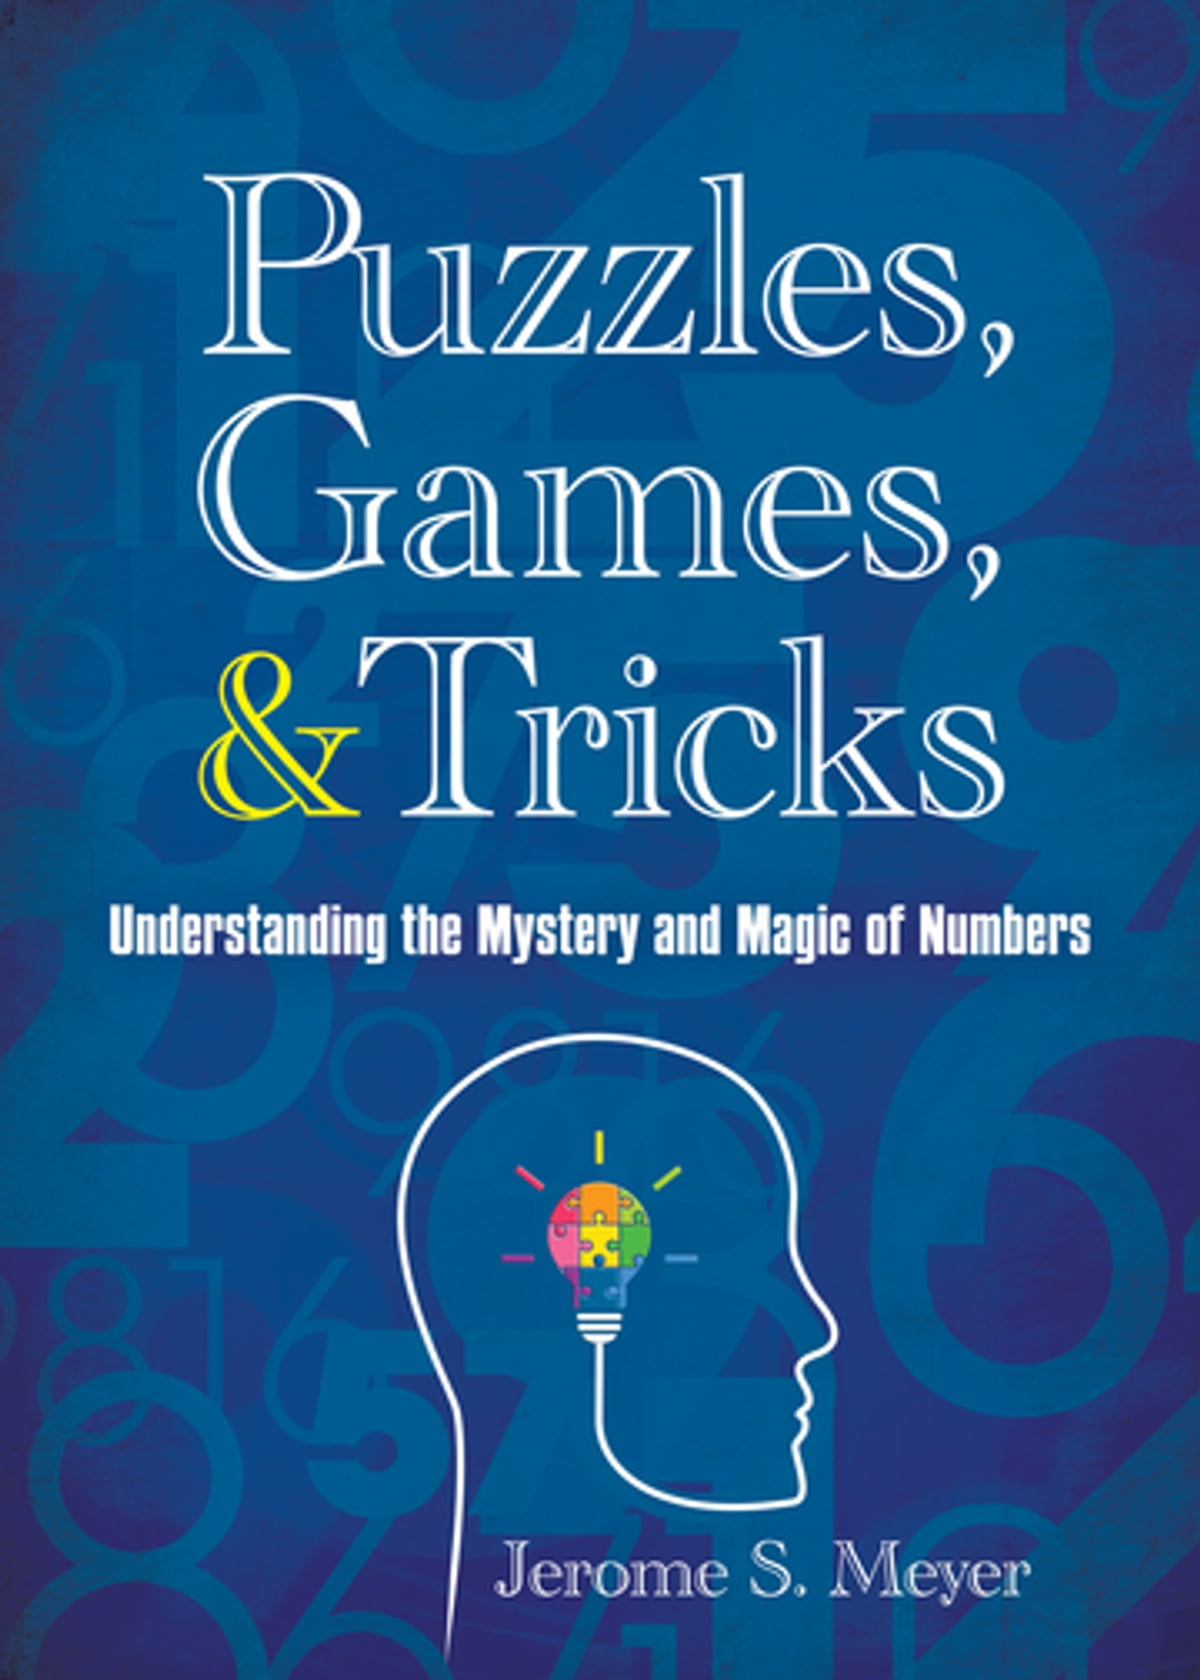 Puzzles, Games, and Tricks eBook by Jerome Meyer - 9781510727816 | Rakuten  Kobo